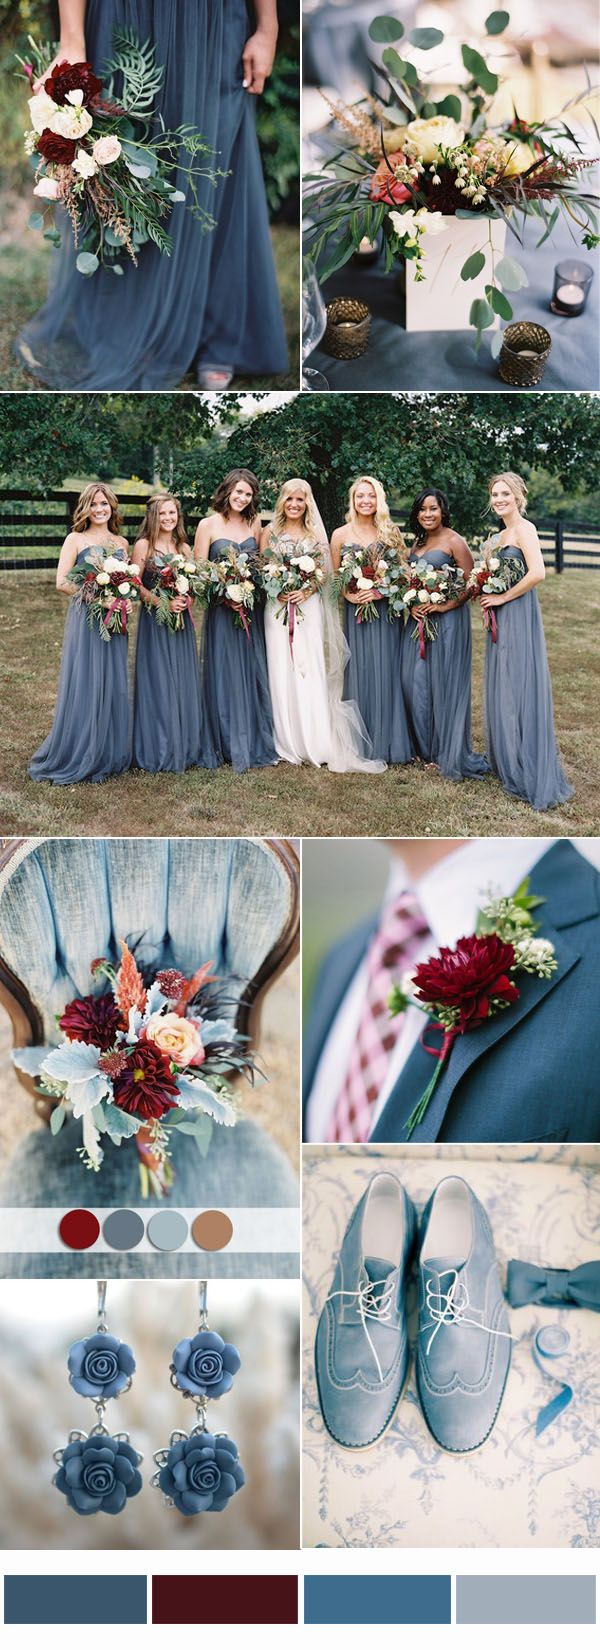 dusty-blue-and-burgundy-wedding-color-combo-ideas-for-wedding-trends-wallpaper-wpc5804462